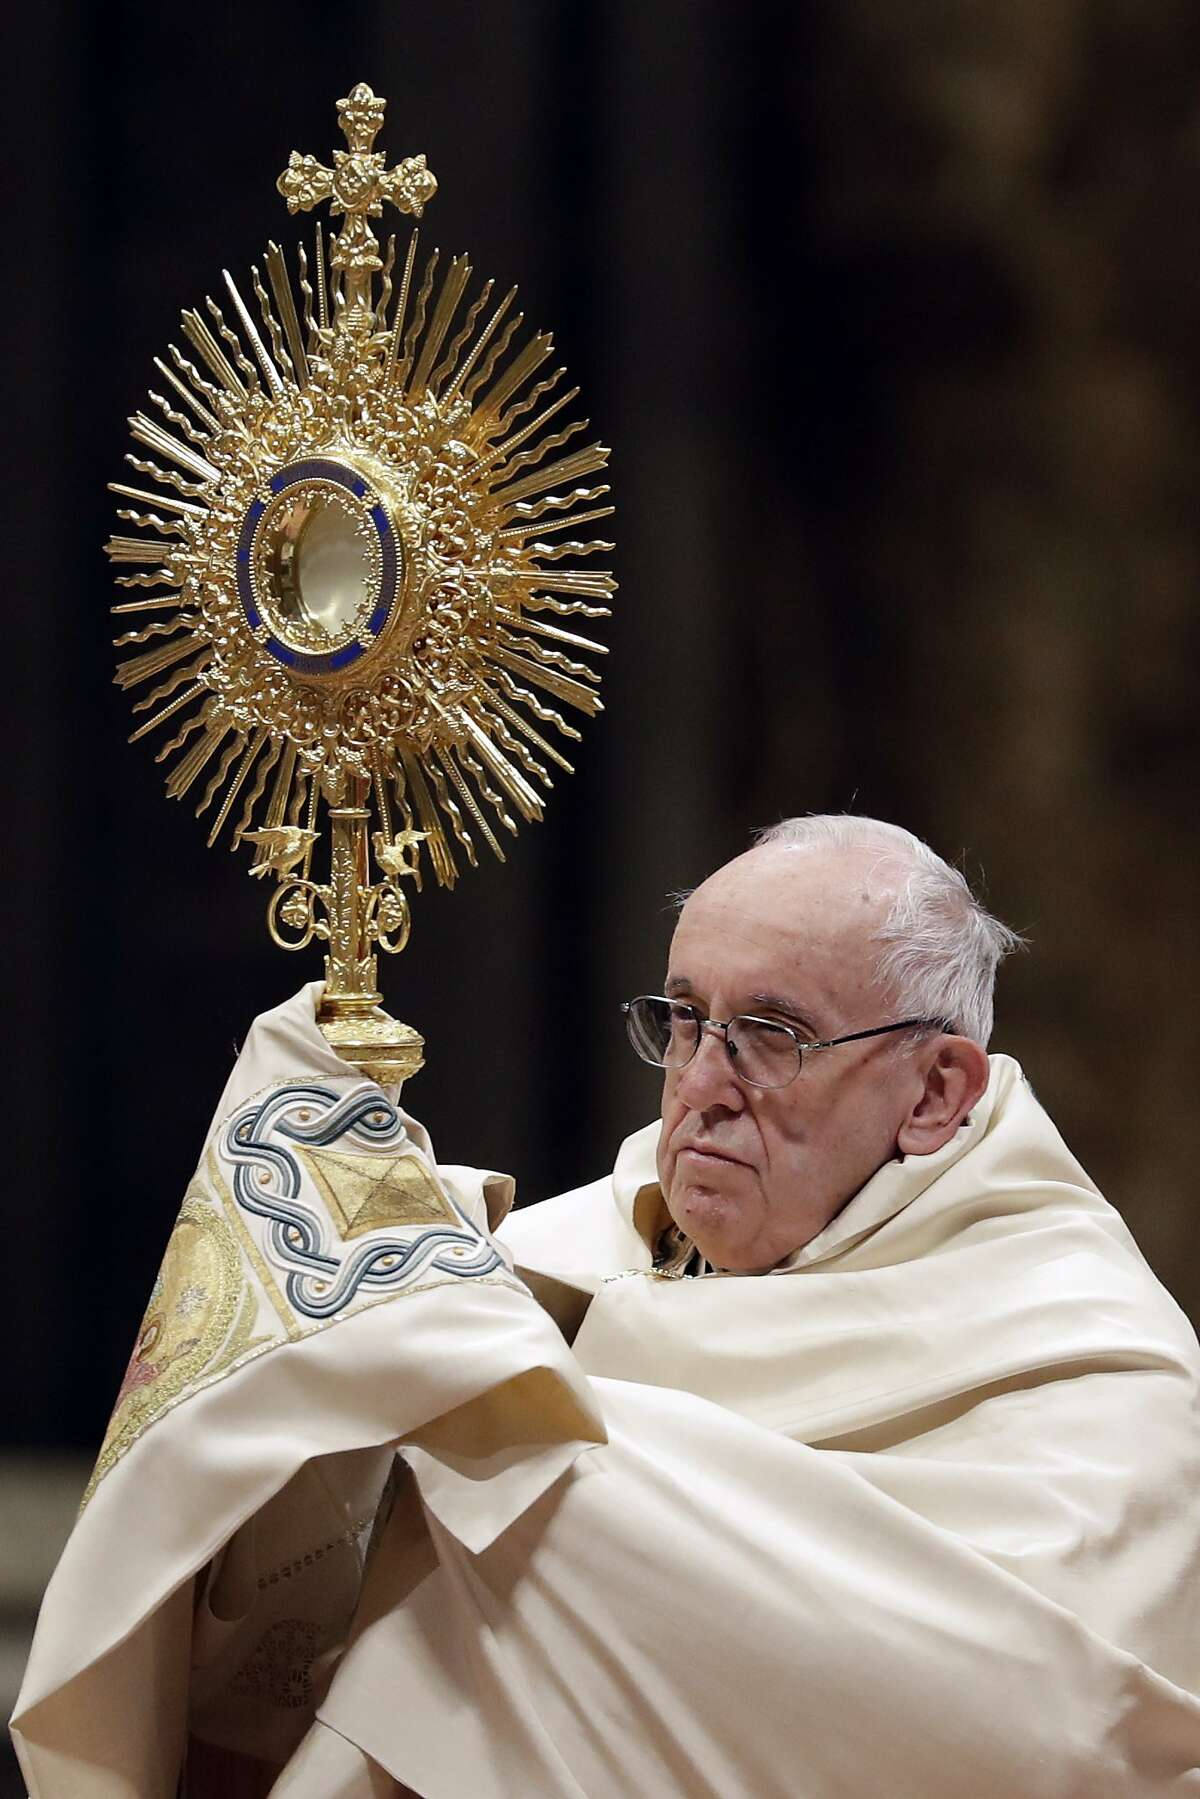 Pope Francis holds a monstrance as he celebrates a new year's eve vespers Mass in St. Peter's Basilica at the Vatican, Monday, Dec. 31, 2018. (AP Photo/Andrew Medichini)